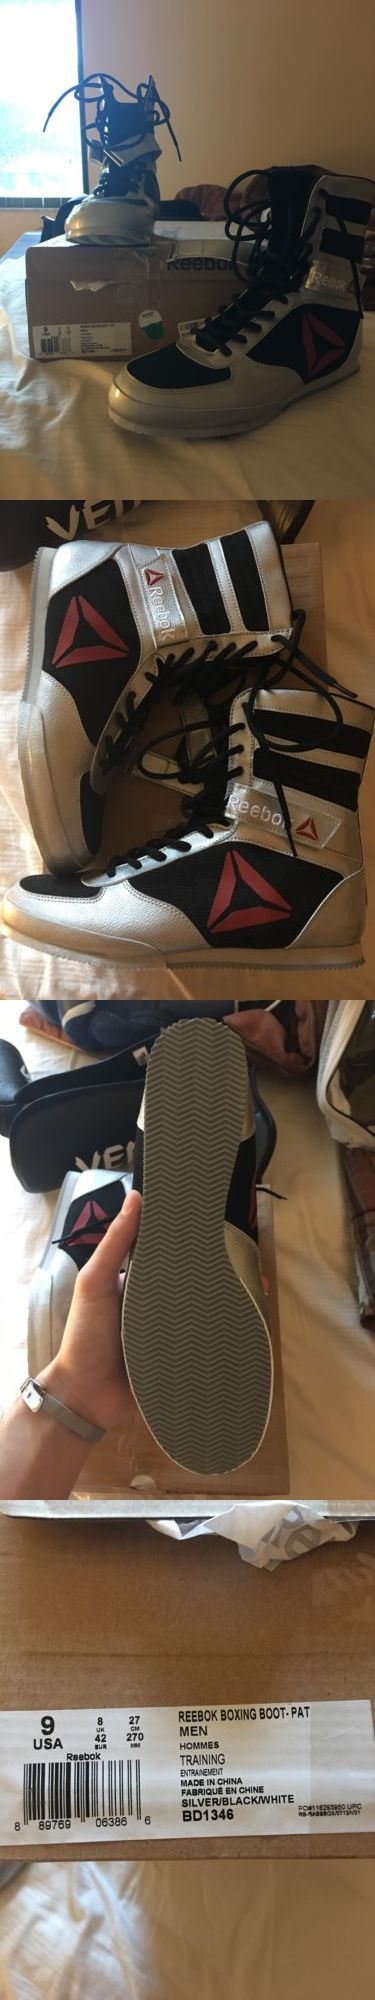 Shoes and Footwear 73989: Reebok Boxing Boots Sz. 9 (Silver Black Red) -> BUY IT NOW ONLY: $135 on eBay!